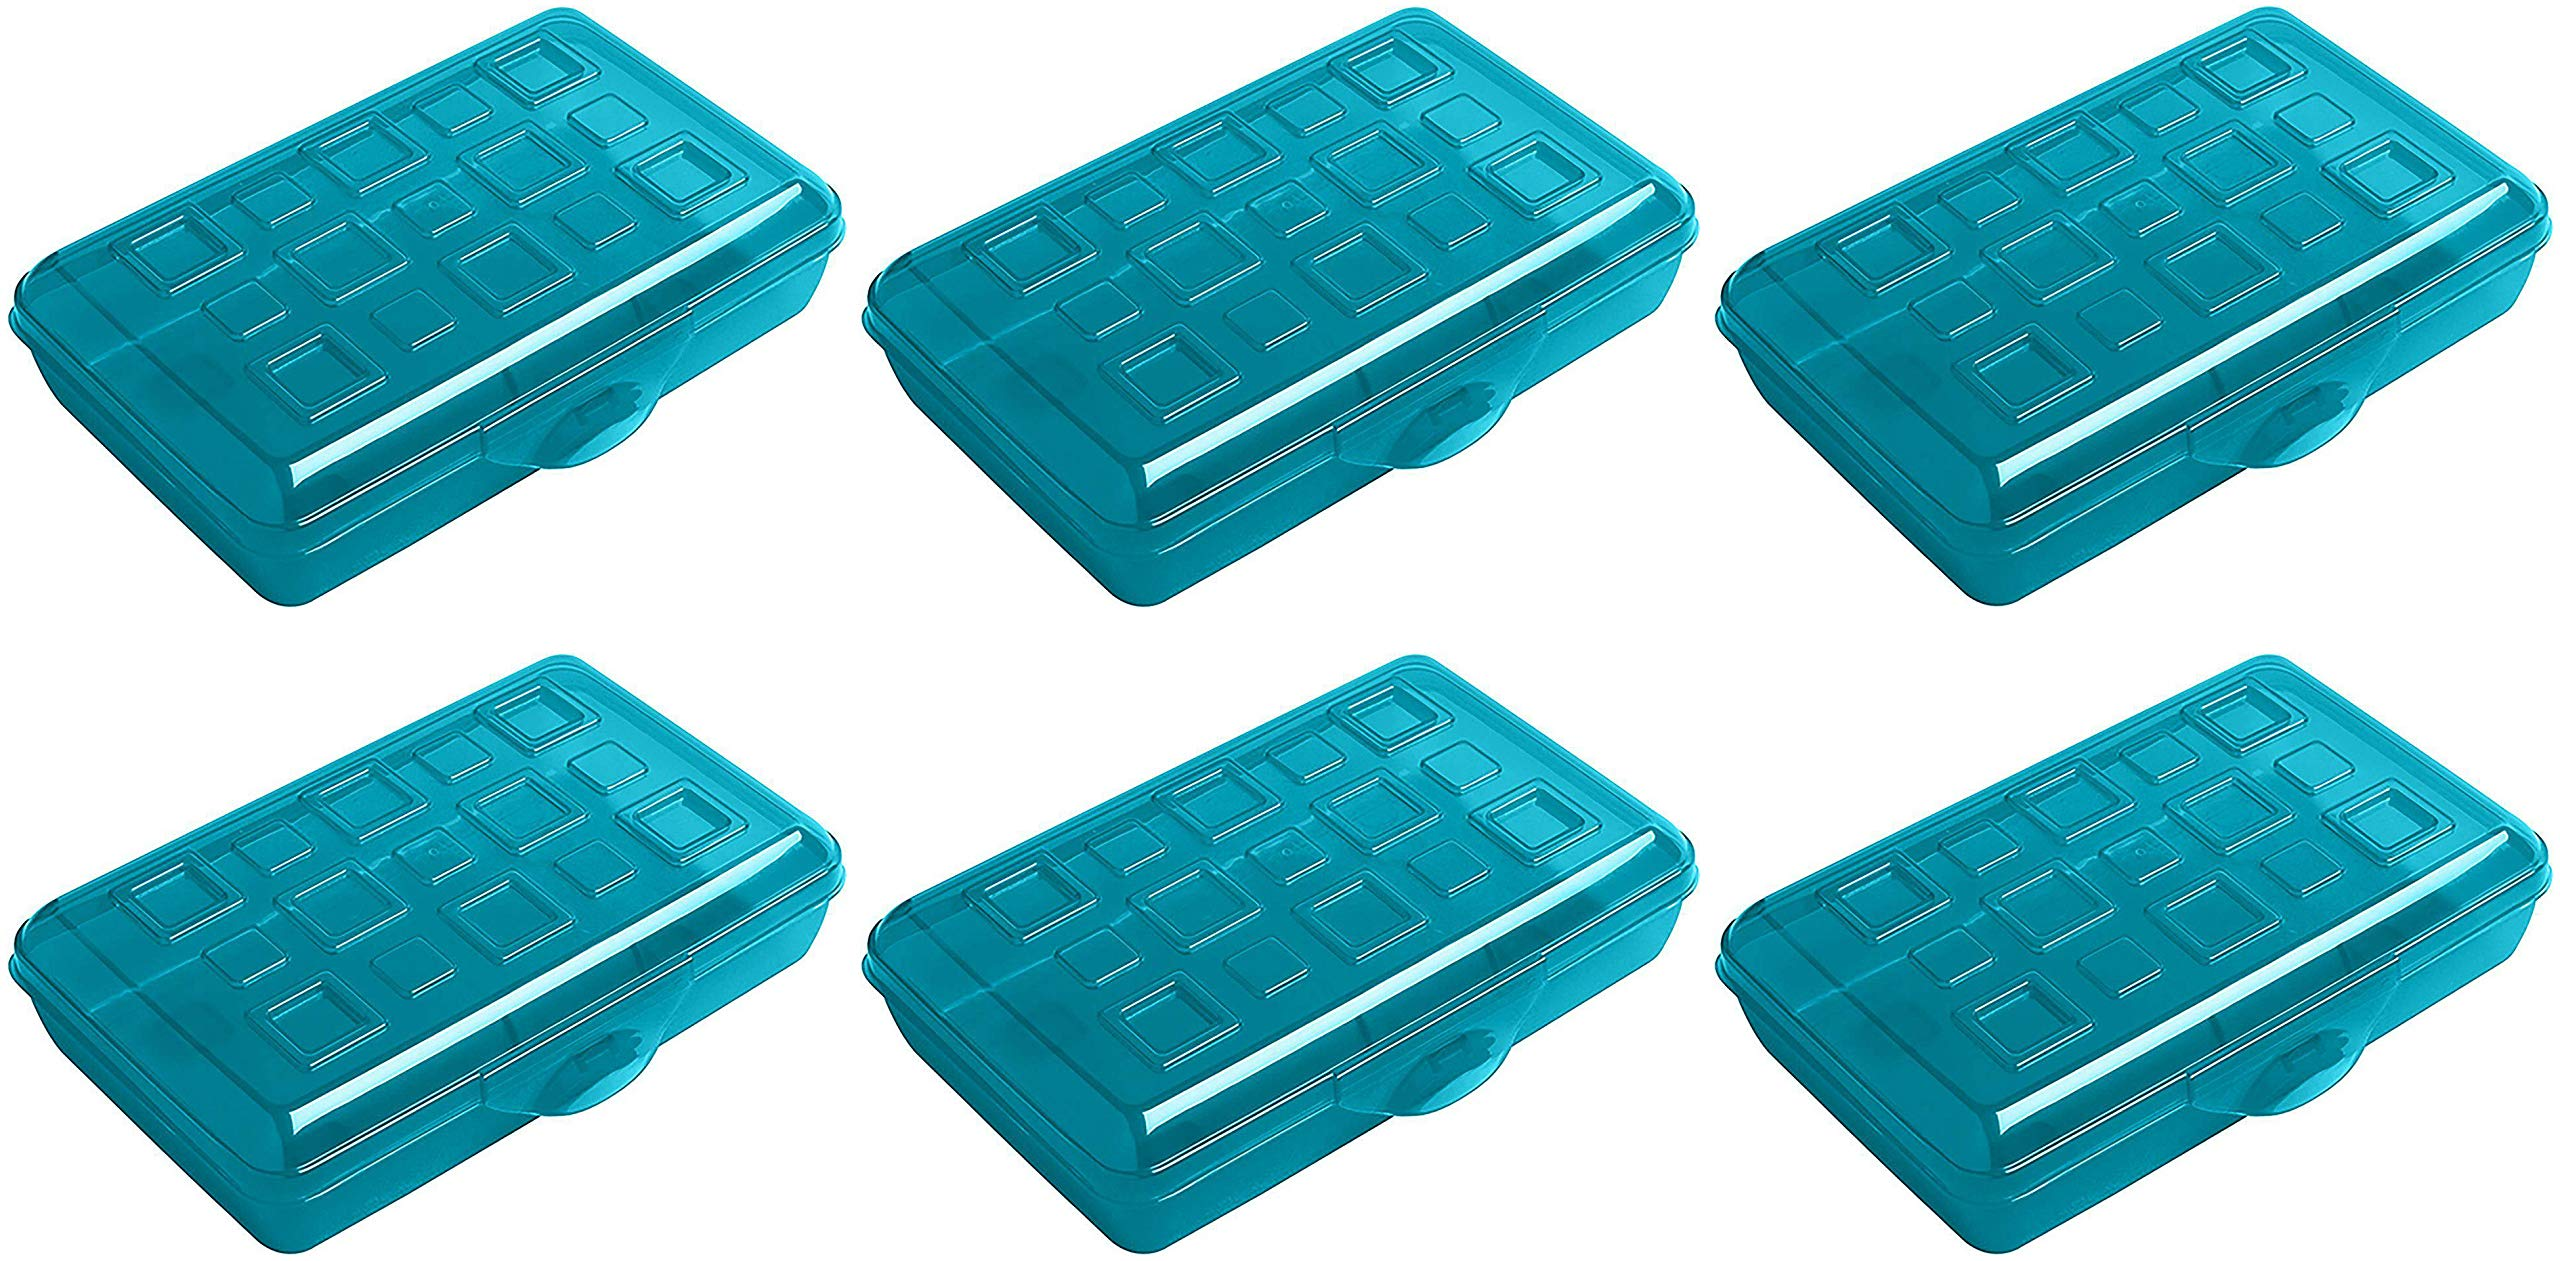 Sterilite Plastic Pencil Box - Green - Pack of 6 by STERILITE